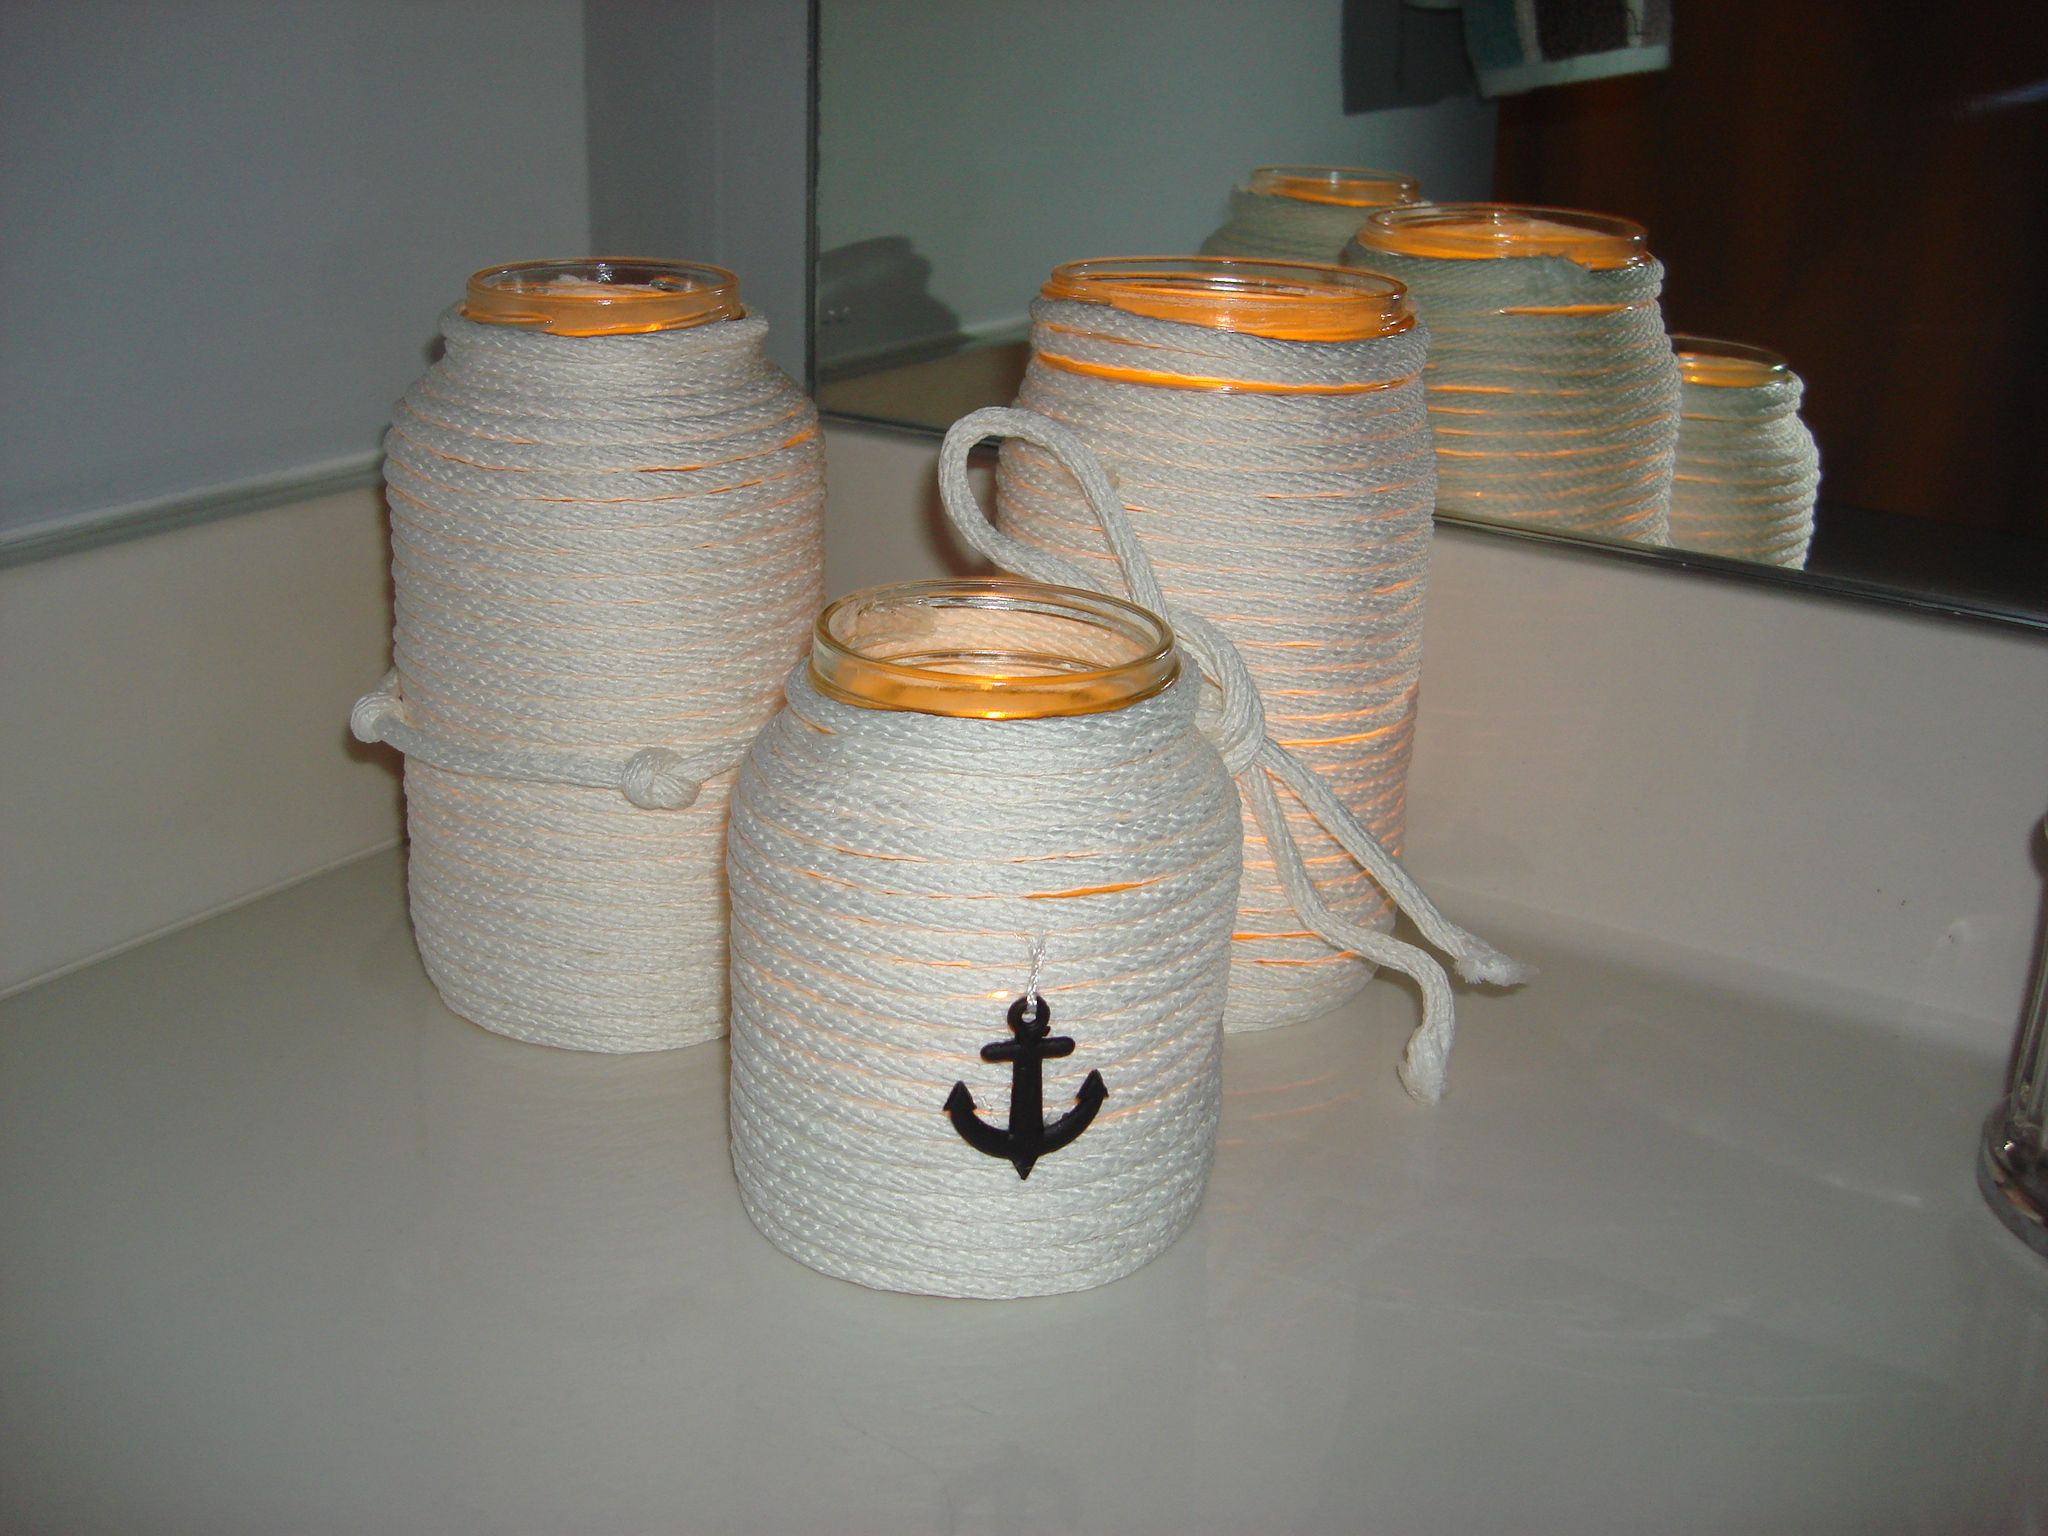 Anchor bathroom decor - Diy Nautical Bathroom Decor Mason Jars Soft Rope And Hot Glue Gun